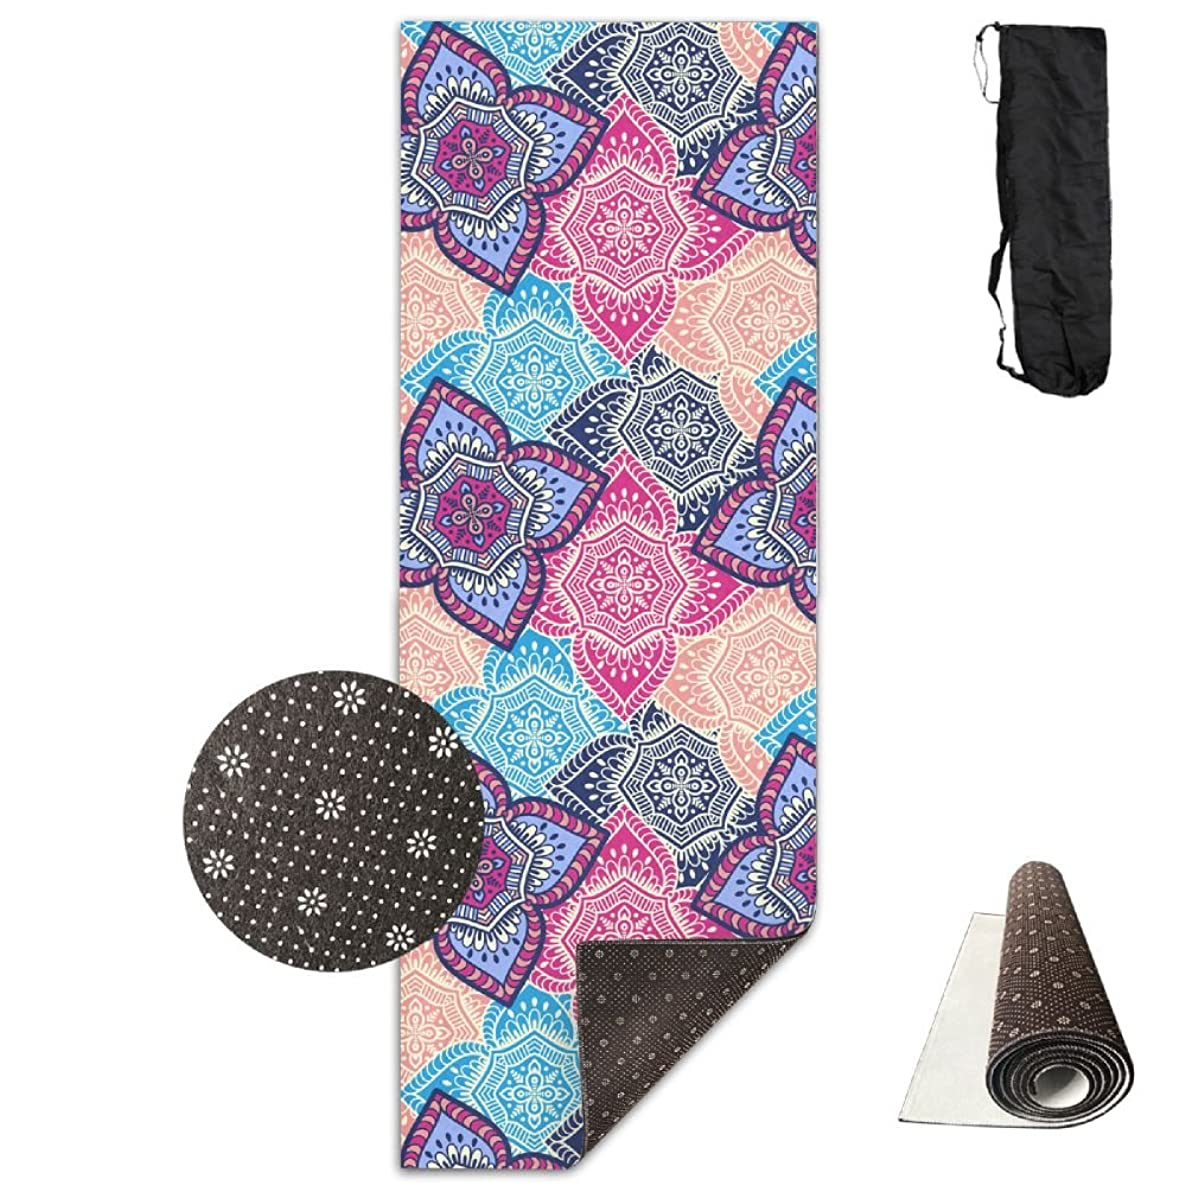 Ethnic Floral Pattern Comfort Unisex Yoga Mat For Yoga,Exercise,Pilates,Sports & Outdoors